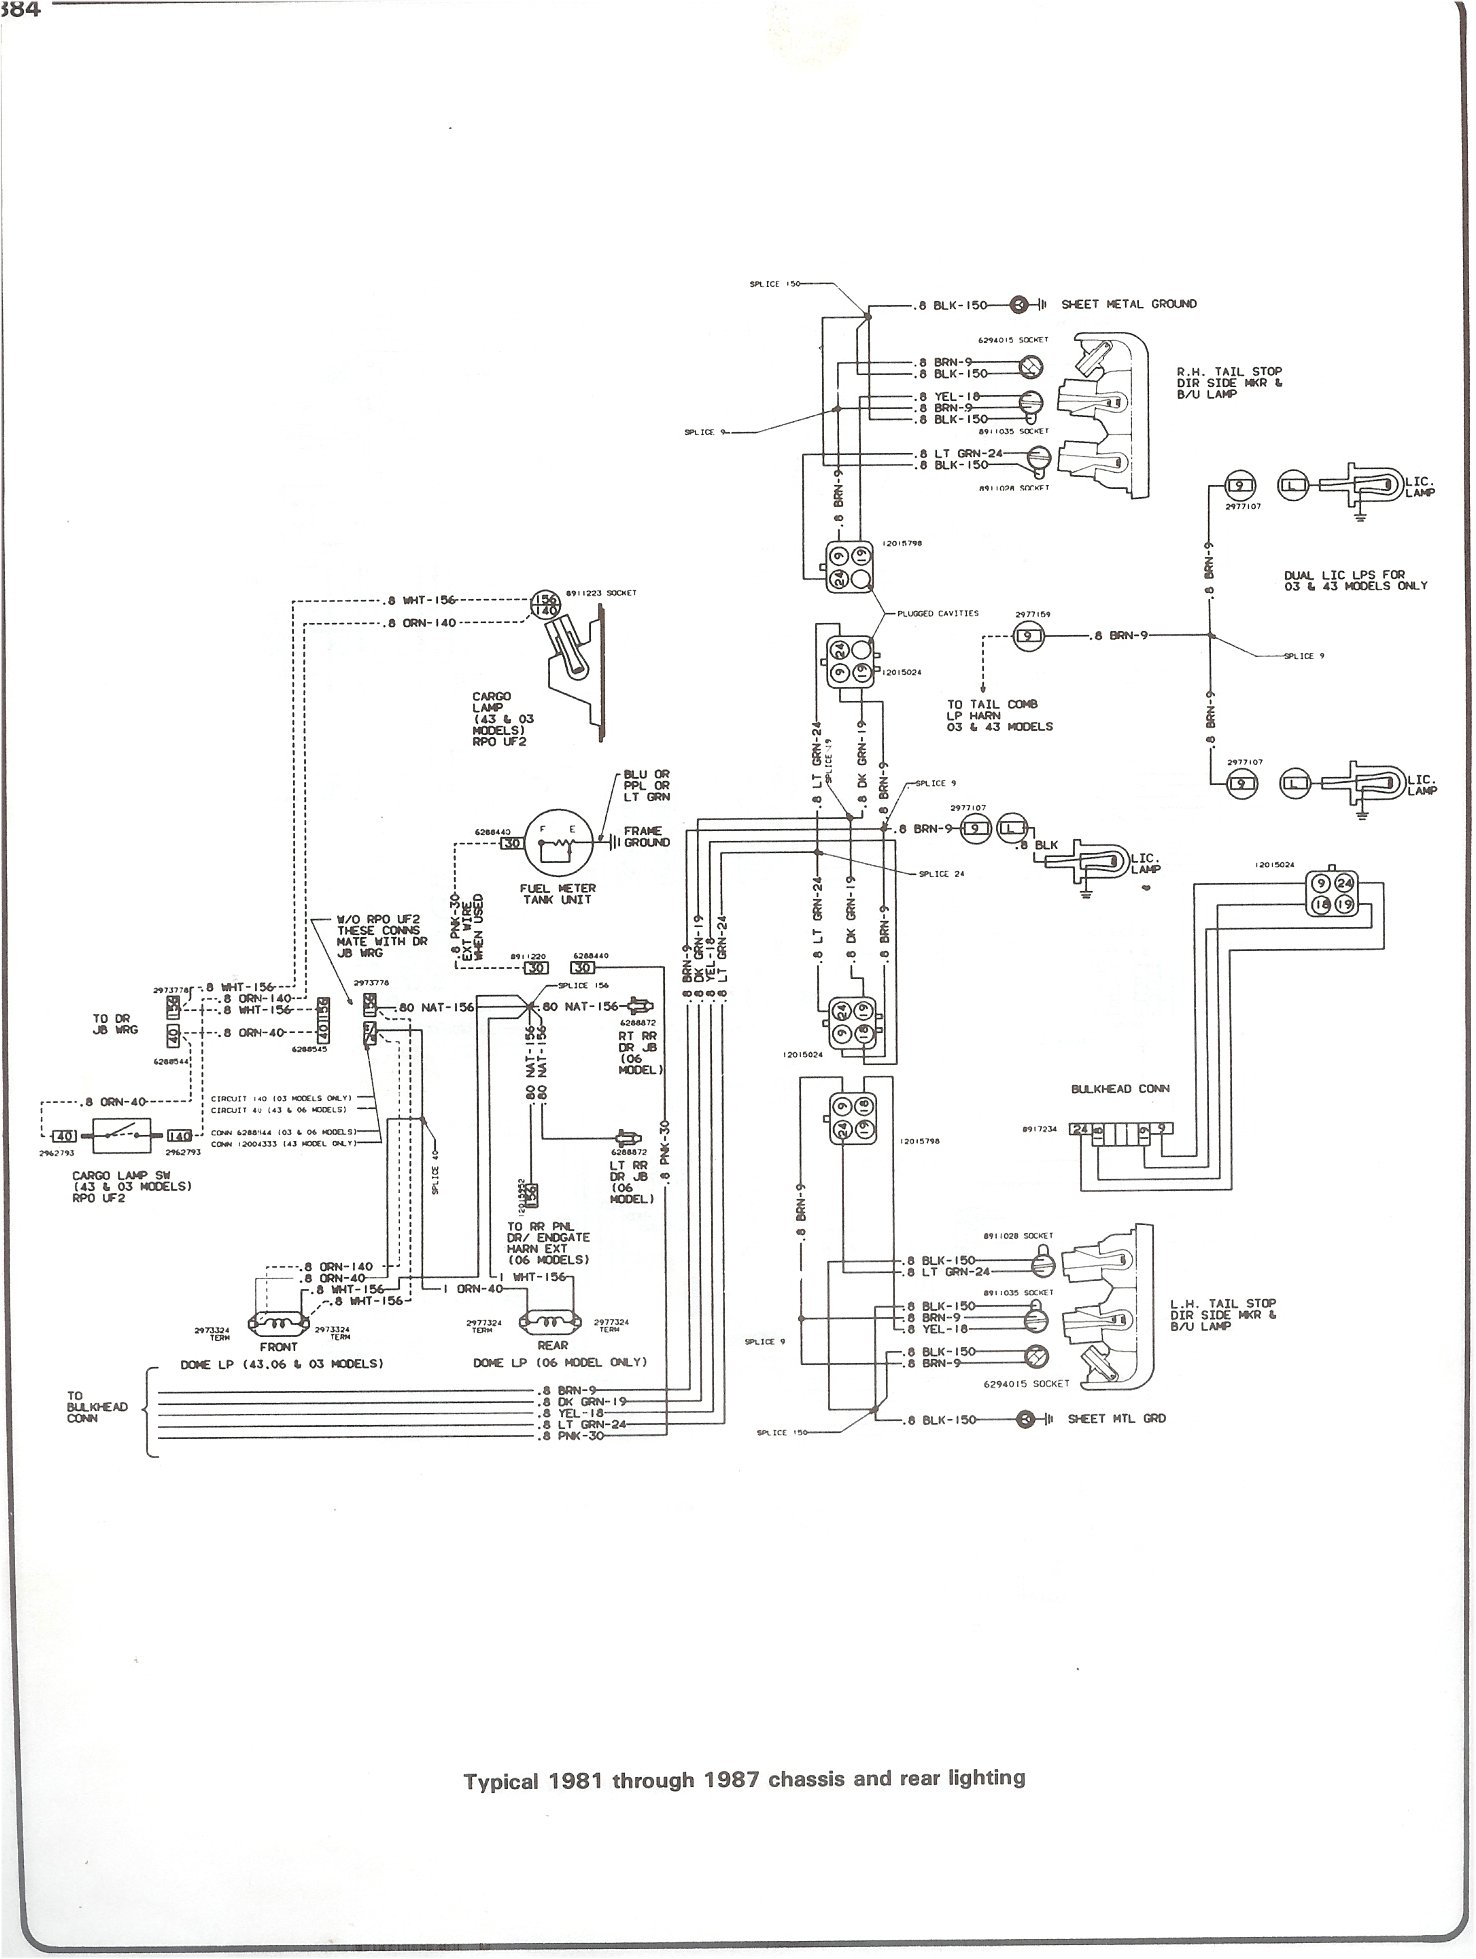 1991 Gmc Suburban Tail Light Wiring Diagrams Schematics 2011 Silverado Trailer Brake Diagram Complete 73 87 Rh Forum 87chevytrucks Com